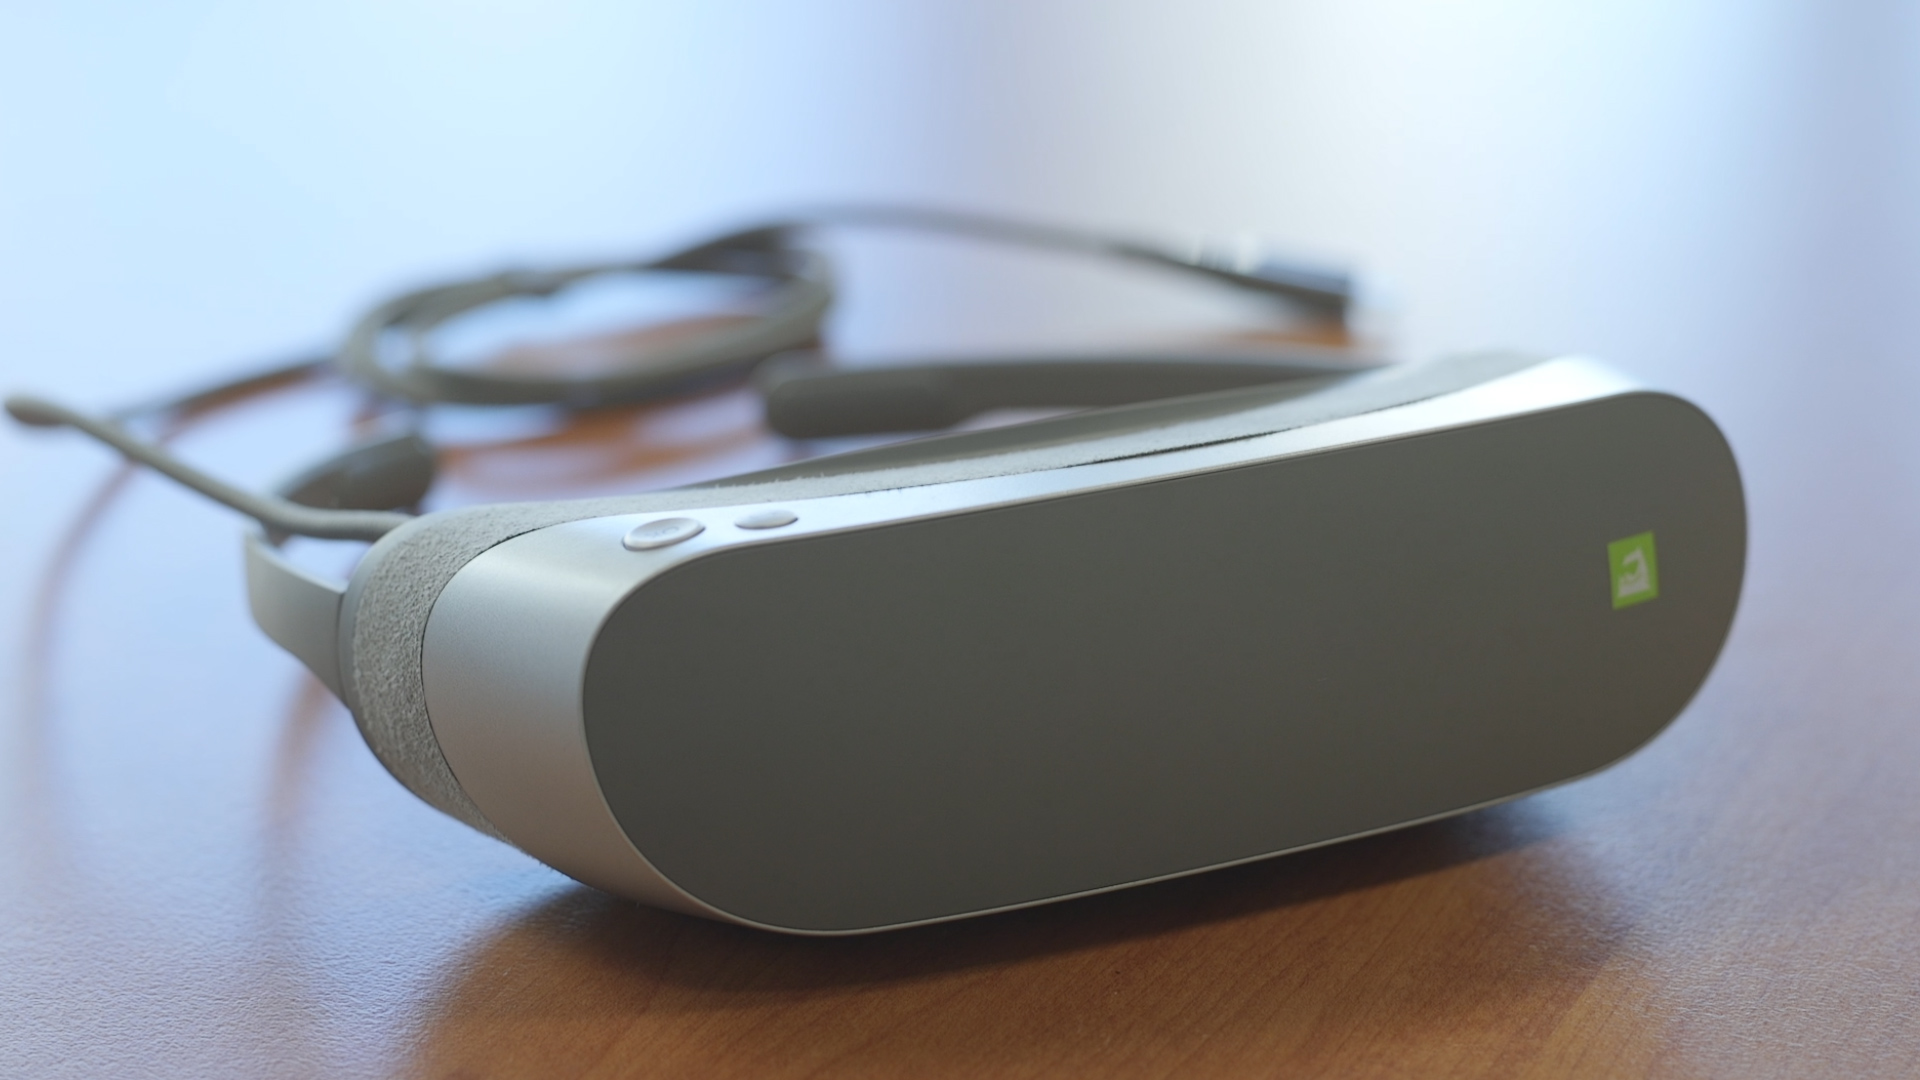 Video: LG's 360 VR headset doesn't dazzle when it comes to virtual reality